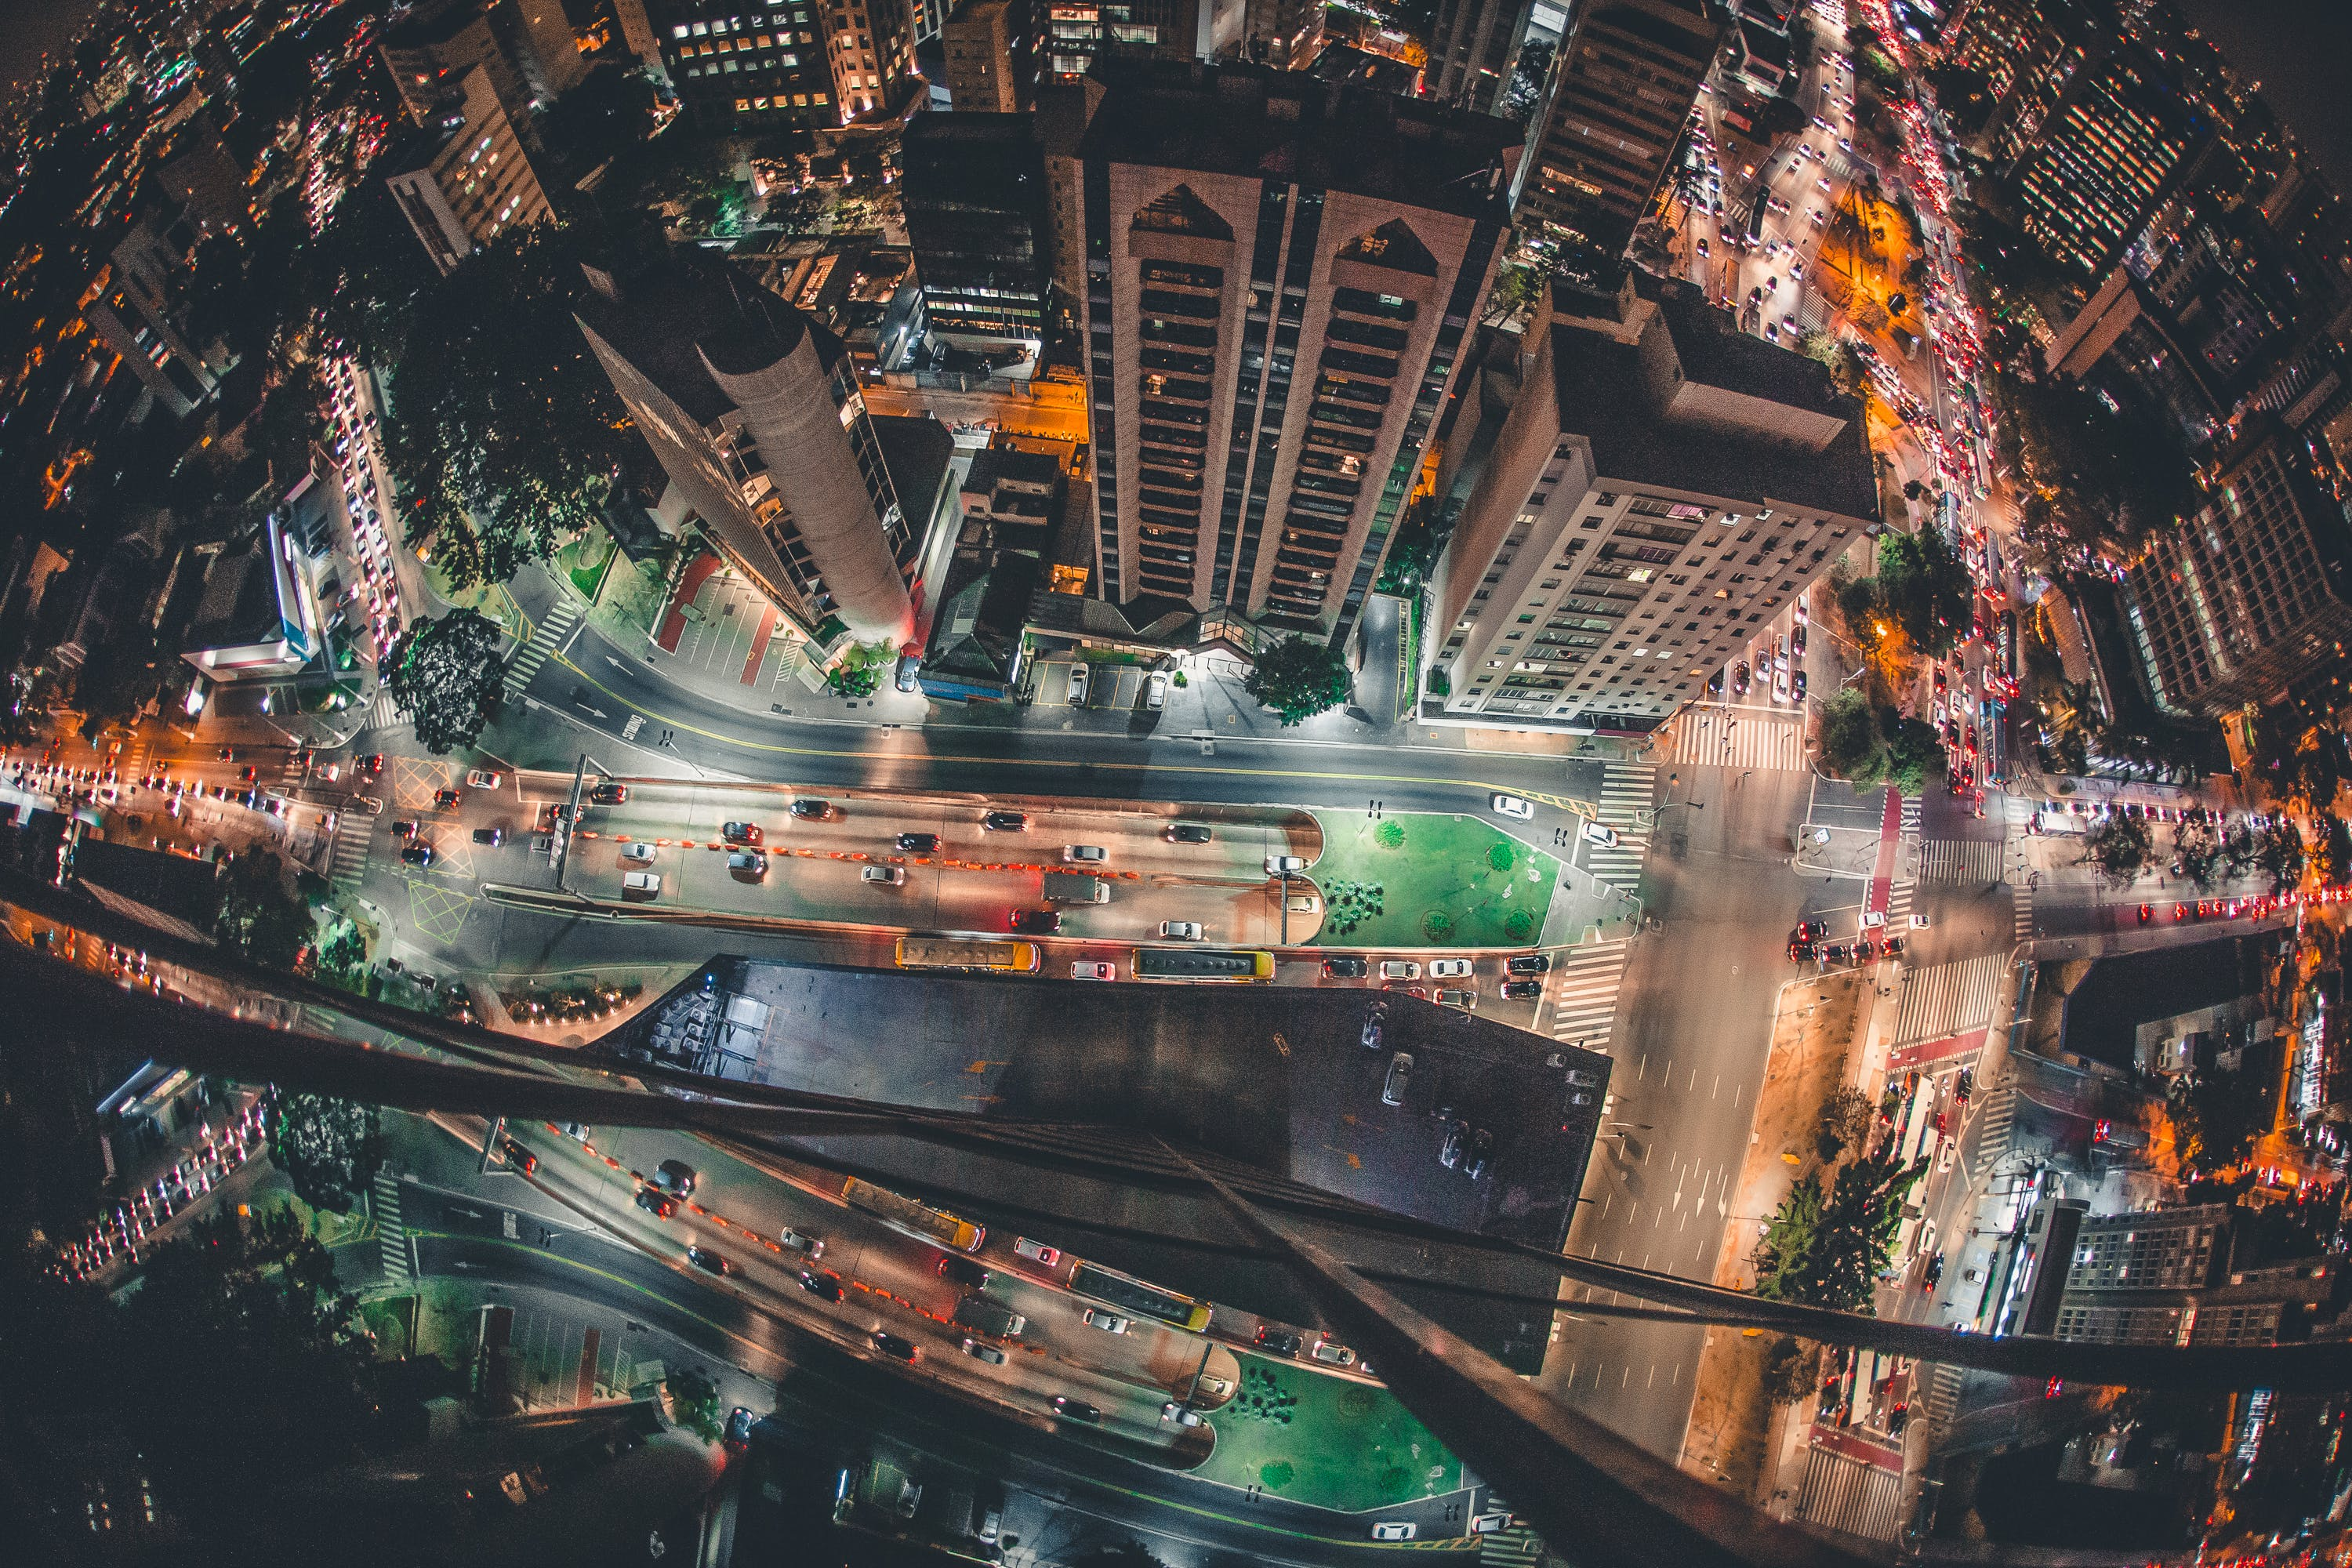 Bird's Eye View Photography Of Buildings During Nighttime